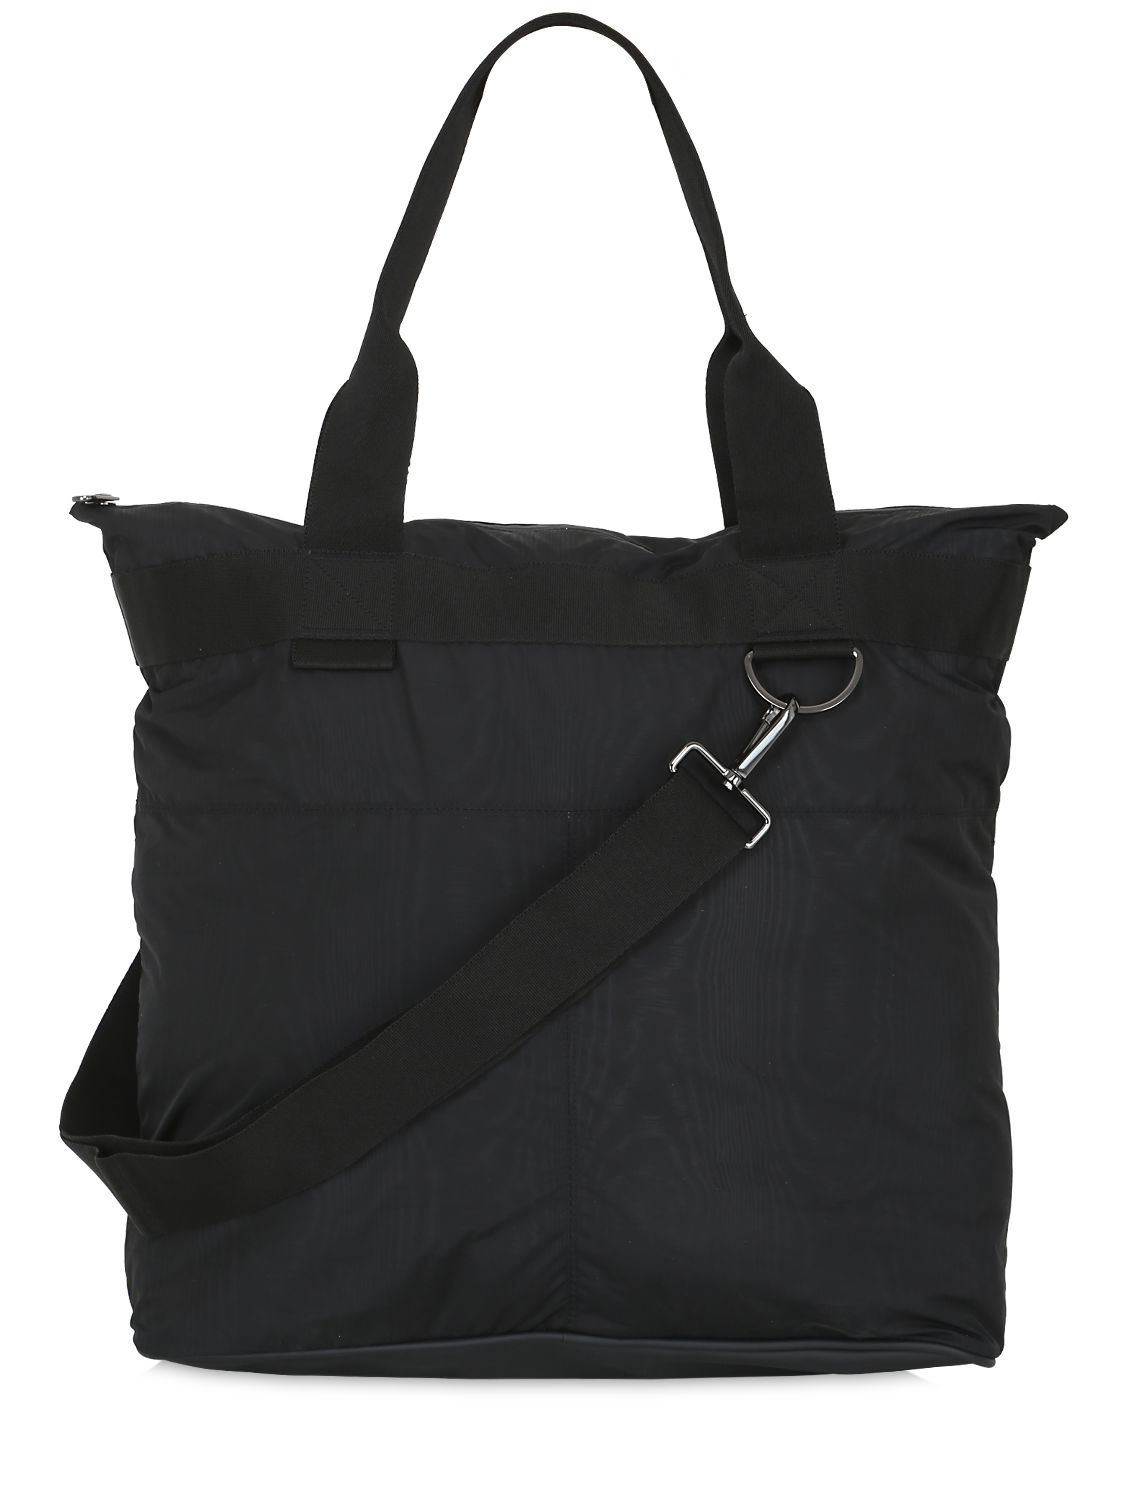 adidas By Stella McCartney Big Studio Sports Tote Bag in Black